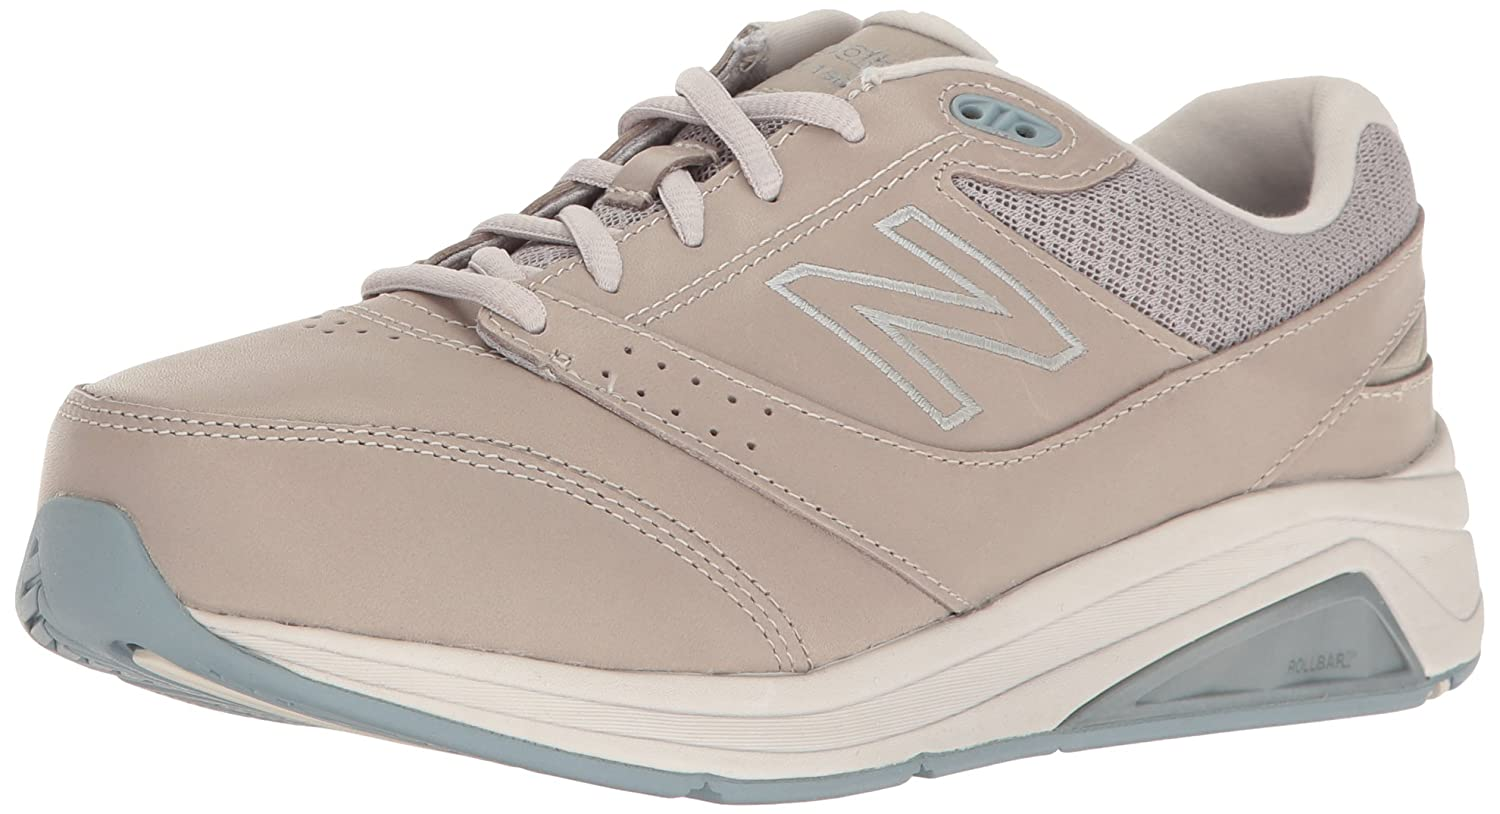 New Balance Women's Womens 928v3 Walking Shoe Walking Shoe B01N0GKG1X 6 2E US|Grey